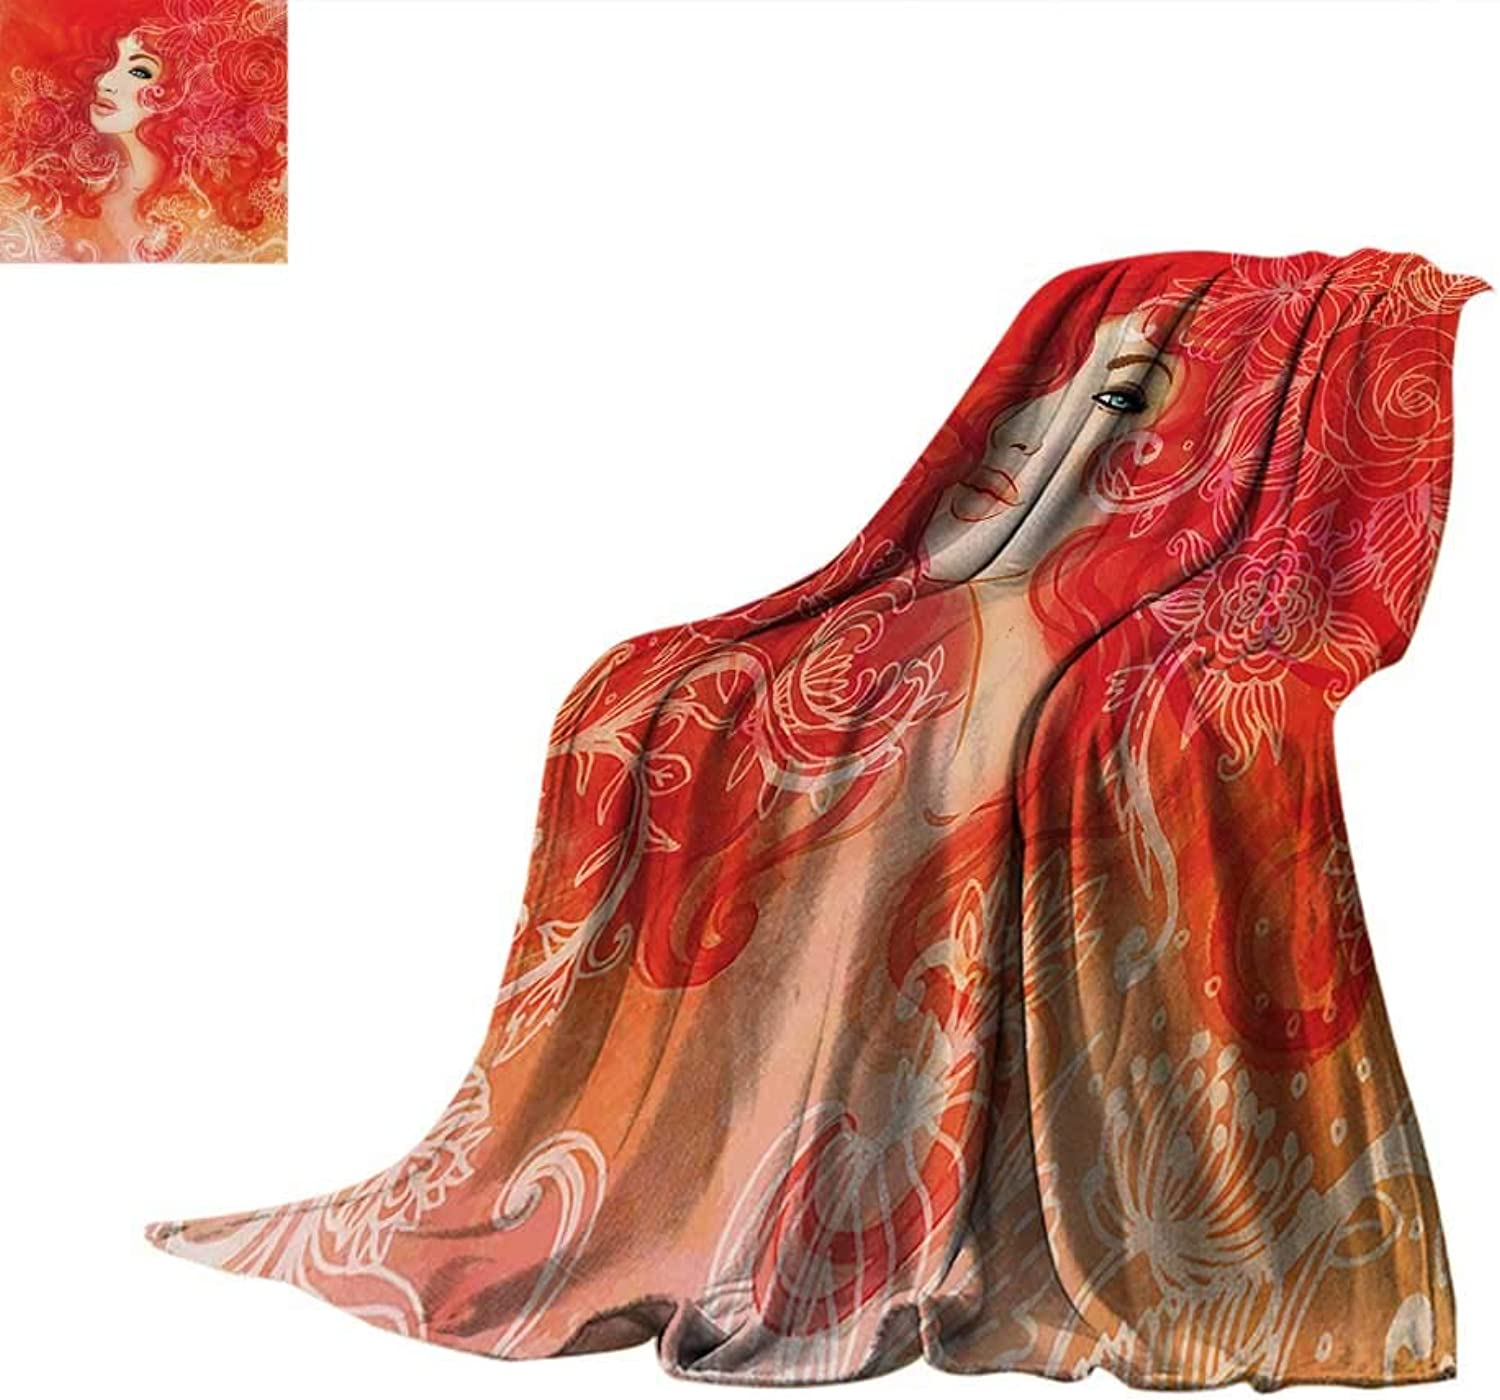 Girls Warm Microfiber All Season Blanket Woman Face with Floral Ornamentals in Hair Glamour Watercolor Modern Artwork Warm Microfiber All Season Blanket for Bed or Couch 60 x50  Red orange Cream